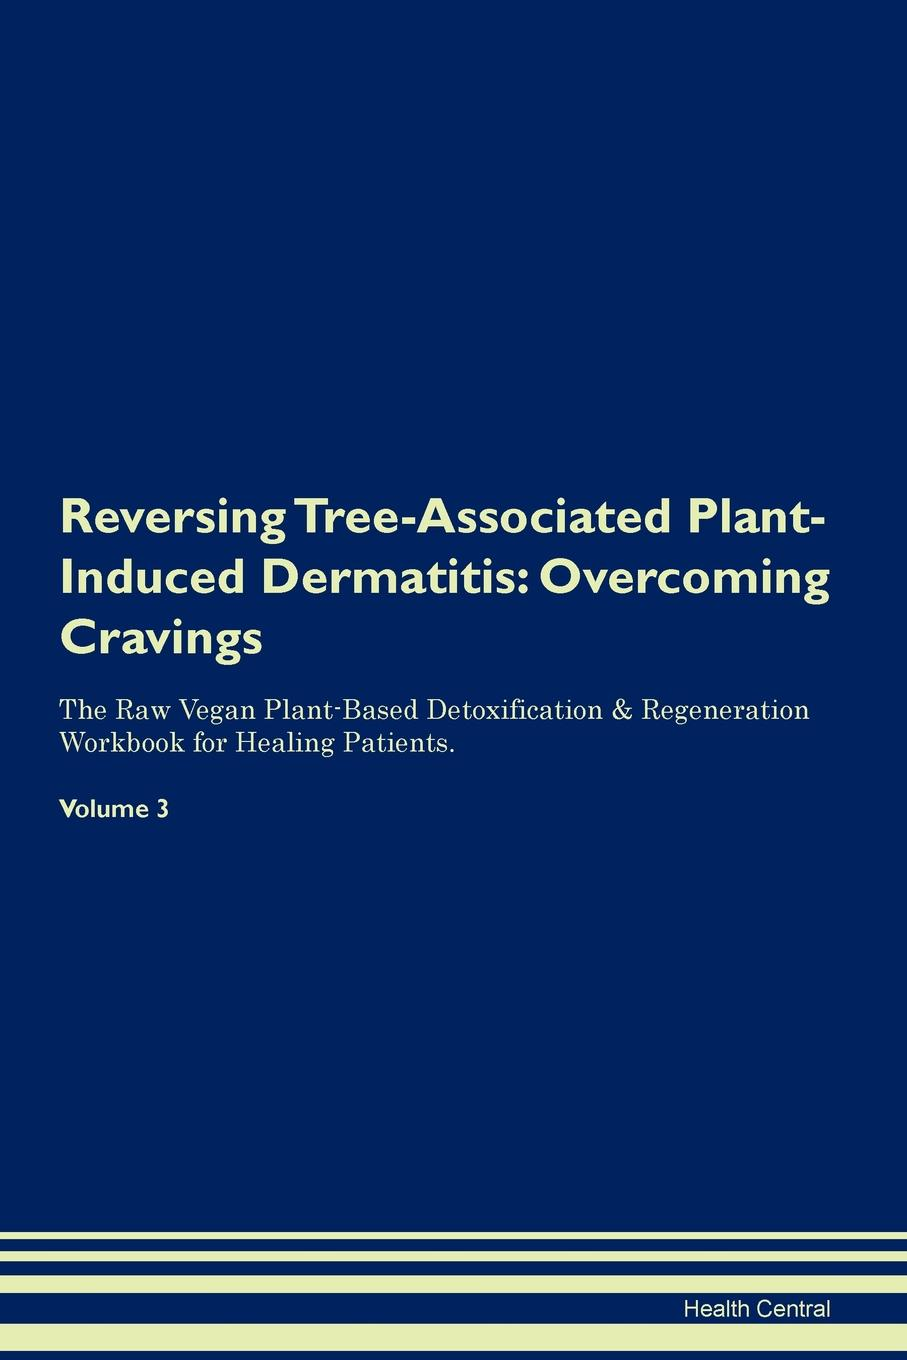 Фото - Health Central Reversing Tree-Associated Plant-Induced Dermatitis. Overcoming Cravings The Raw Vegan Plant-Based Detoxification & Regeneration Workbook for Healing Patients. Volume 3 health central reversing spinocerebellar ataxia overcoming cravings the raw vegan plant based detoxification